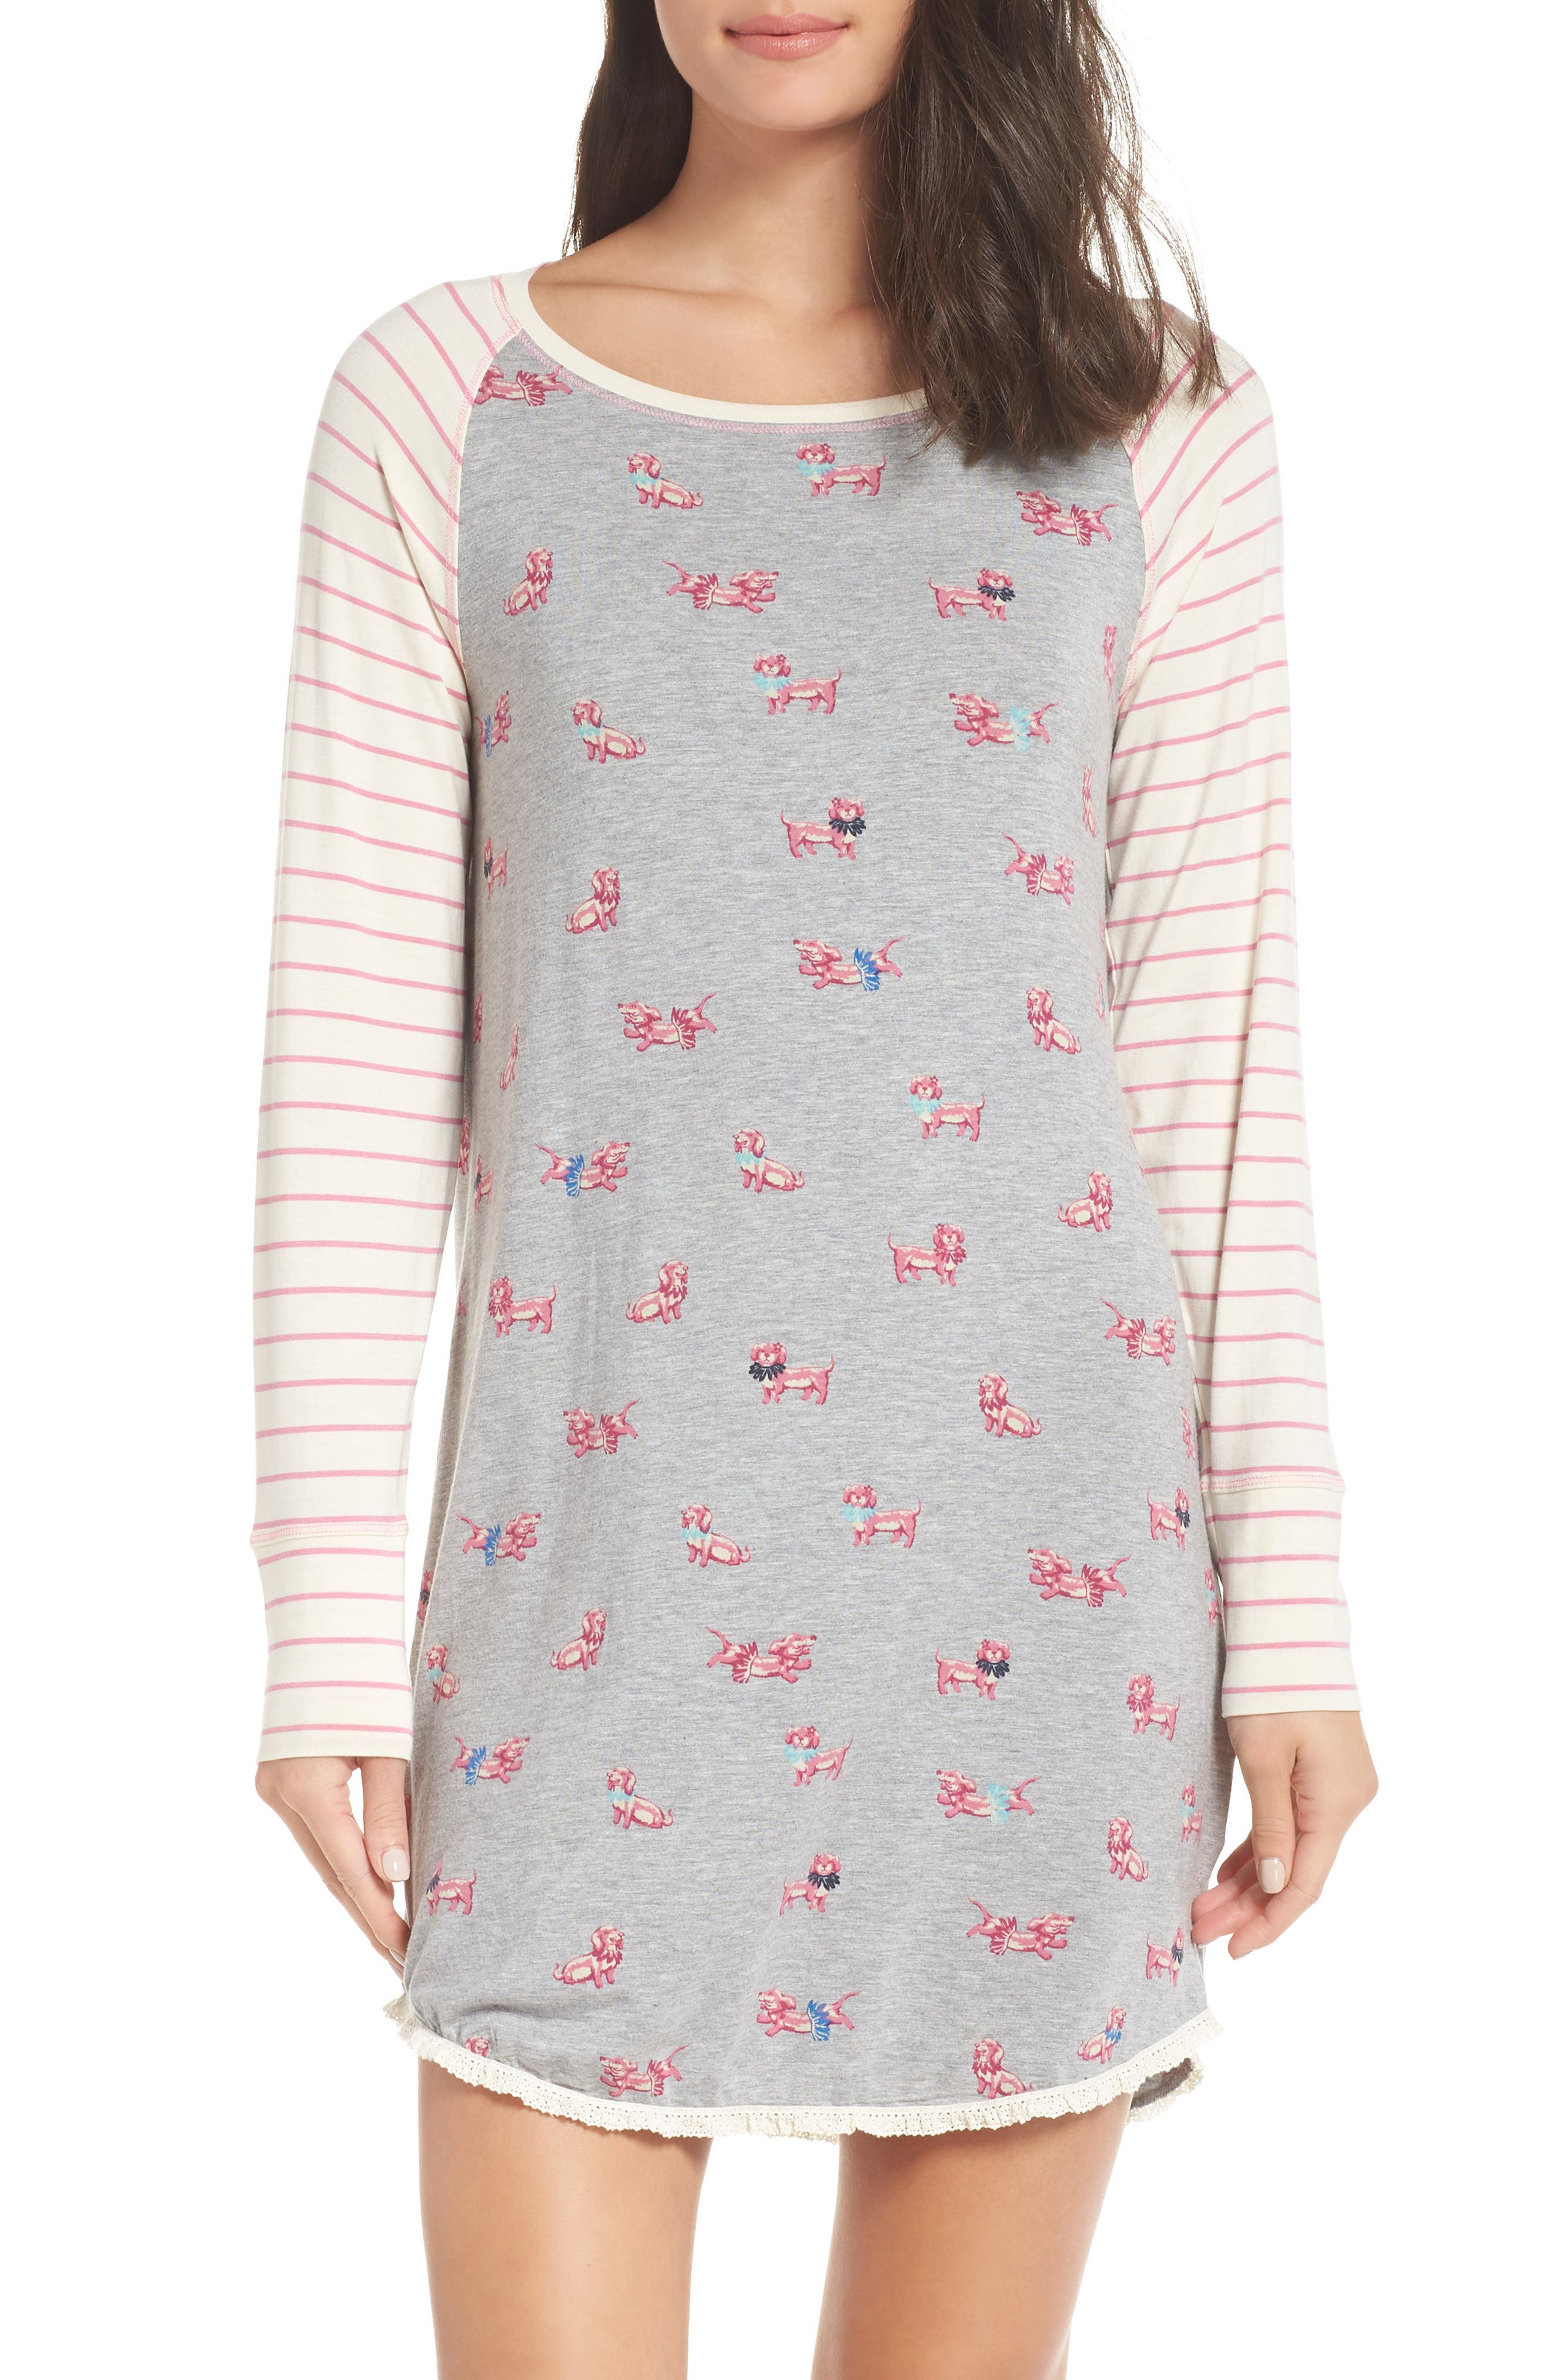 HATLEY, Nighty Nightshirt, Main thumbnail 1, color, 020